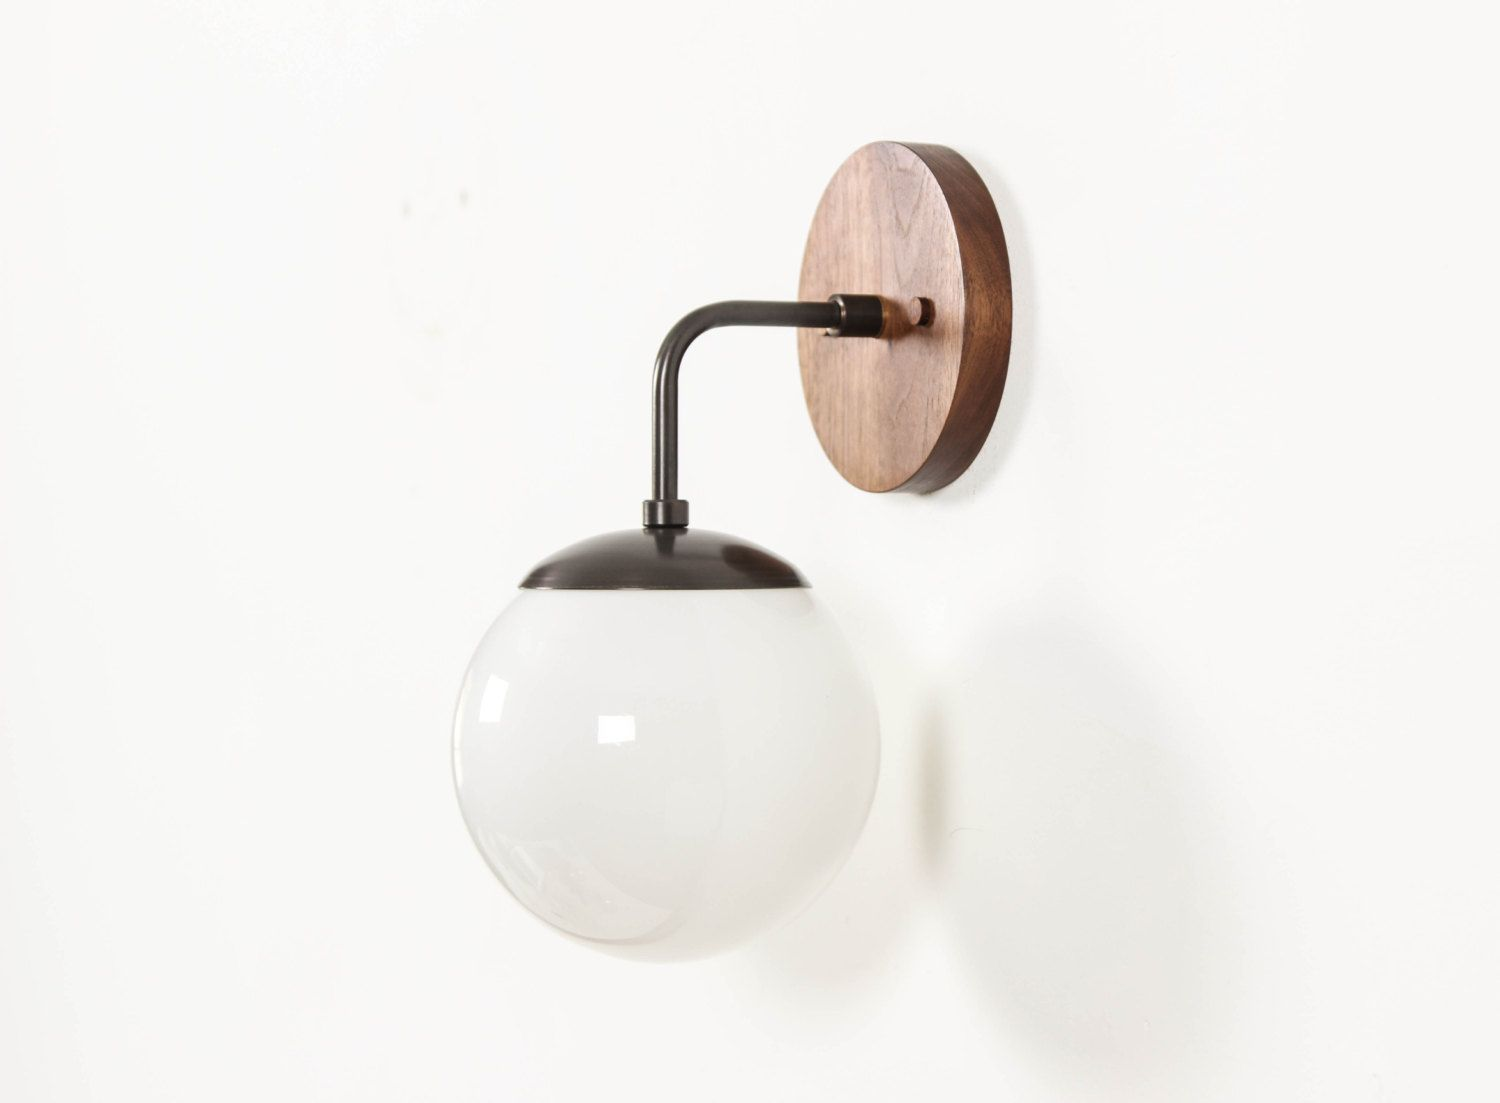 Overview a midcentury inspired handcrafted sconce with wood and